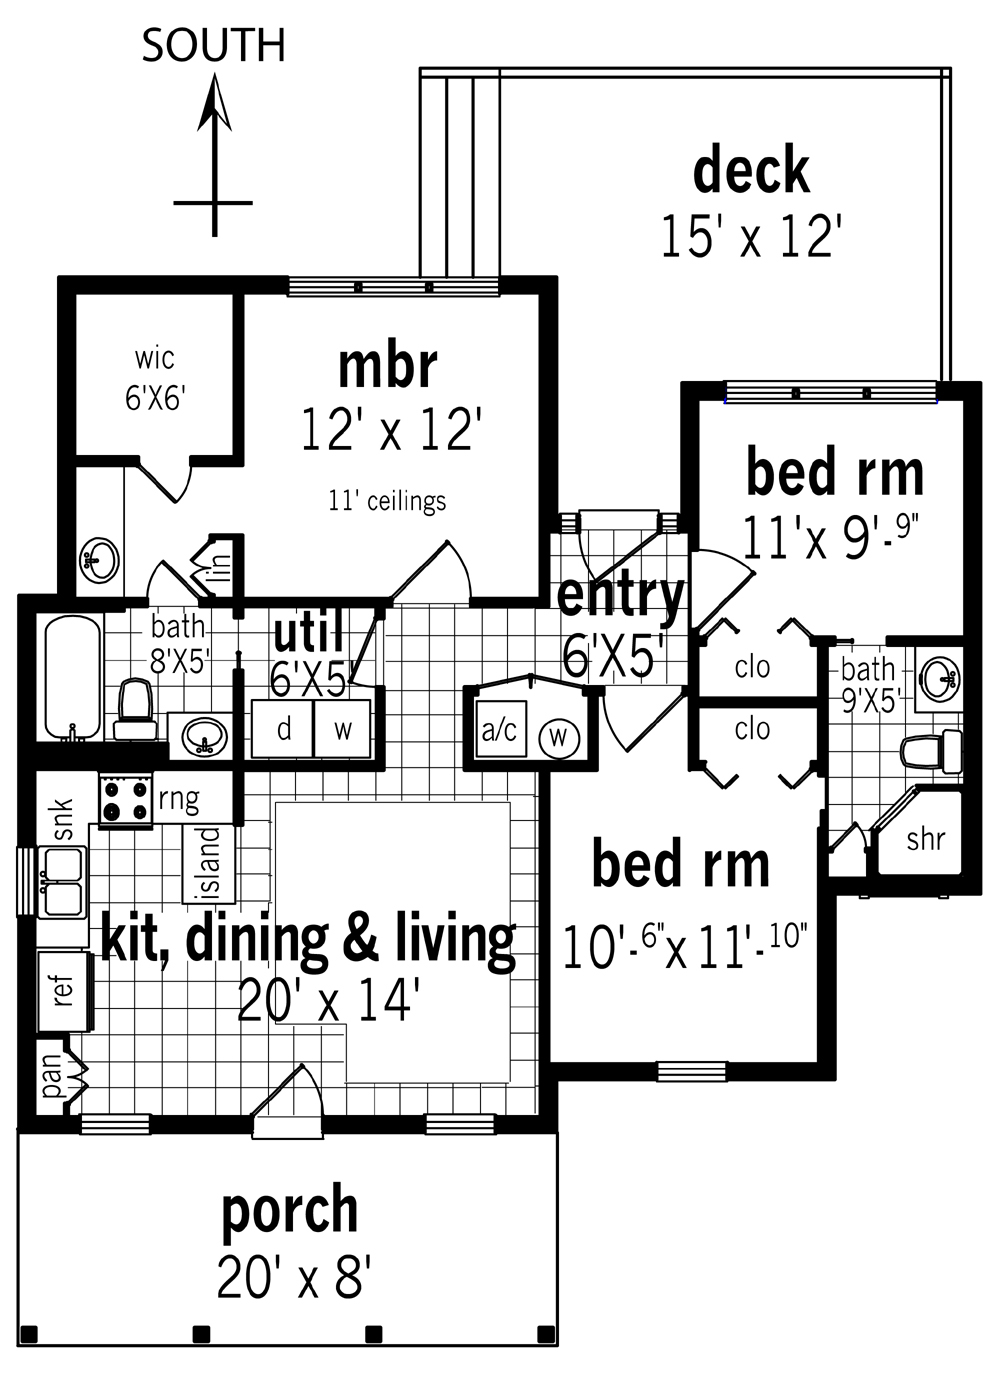 House Design Has Planner House Designs Plans Blueprints D Home House Design Floor Plans Free